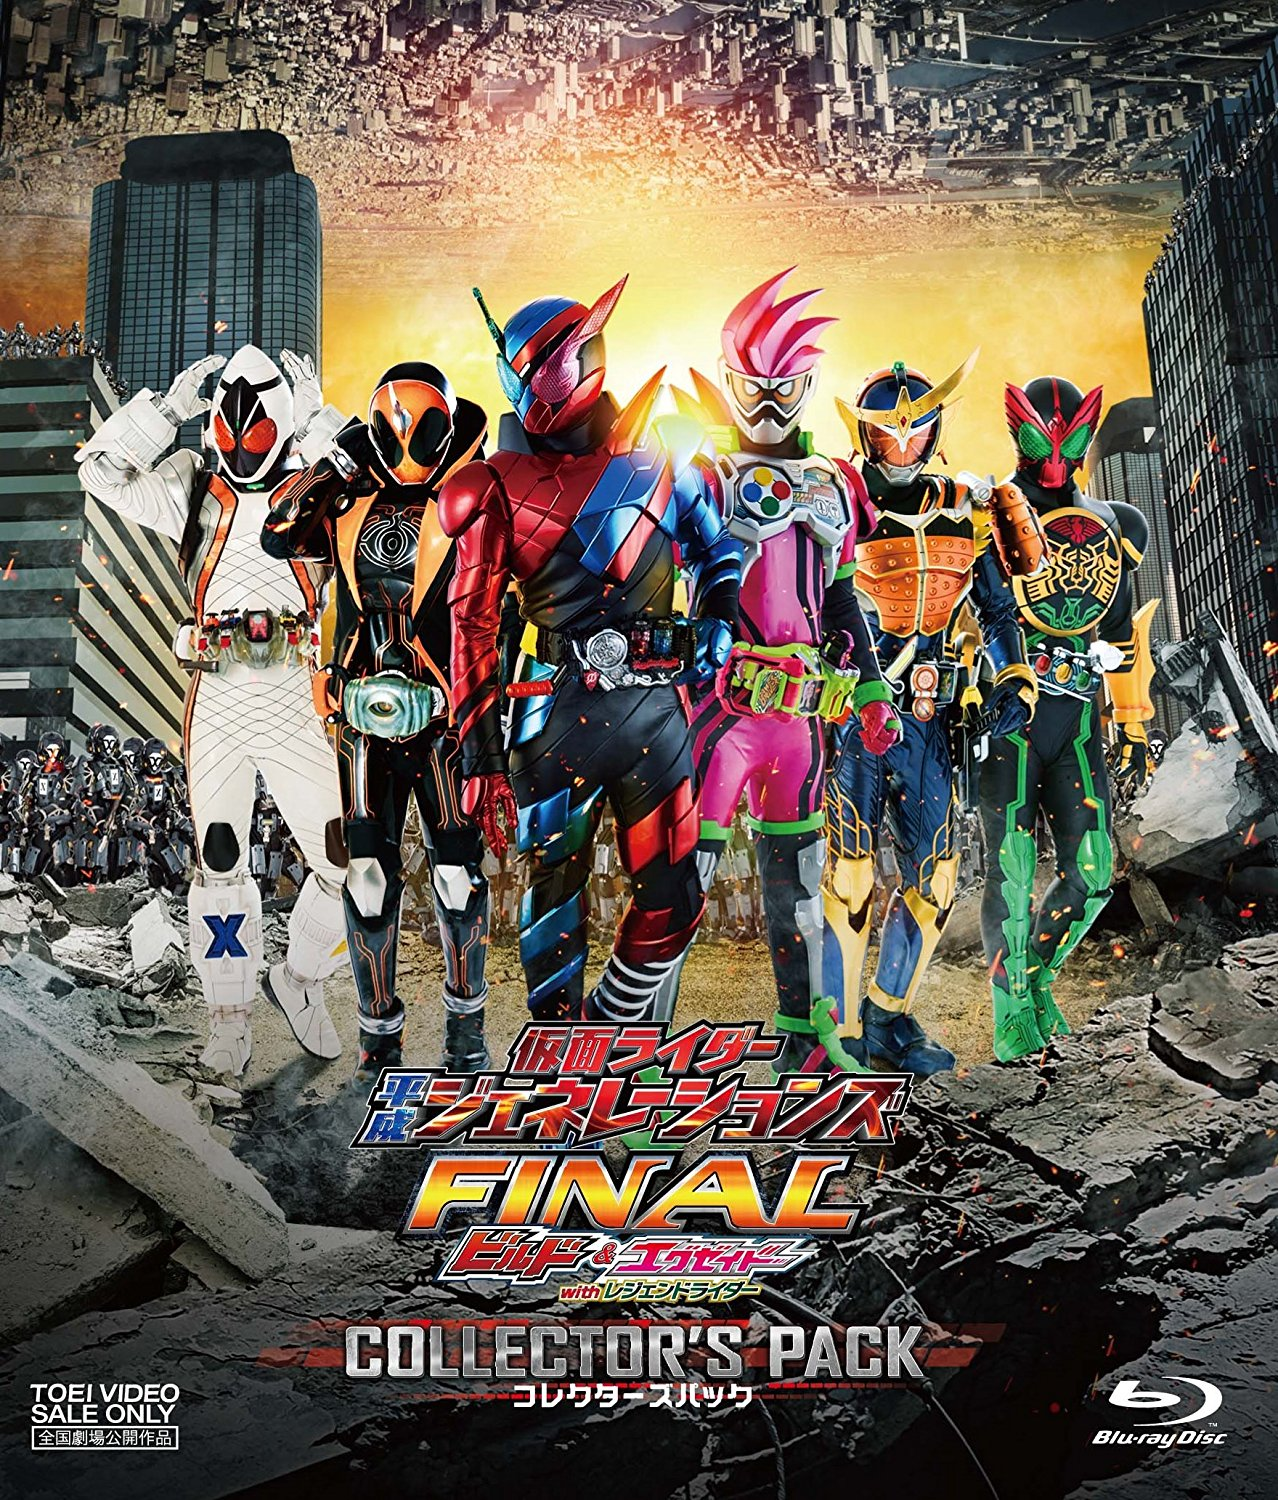 Iam Rider Staus Song Download: Kamen Rider Heisei Generations Final Build And Ex-Aid With